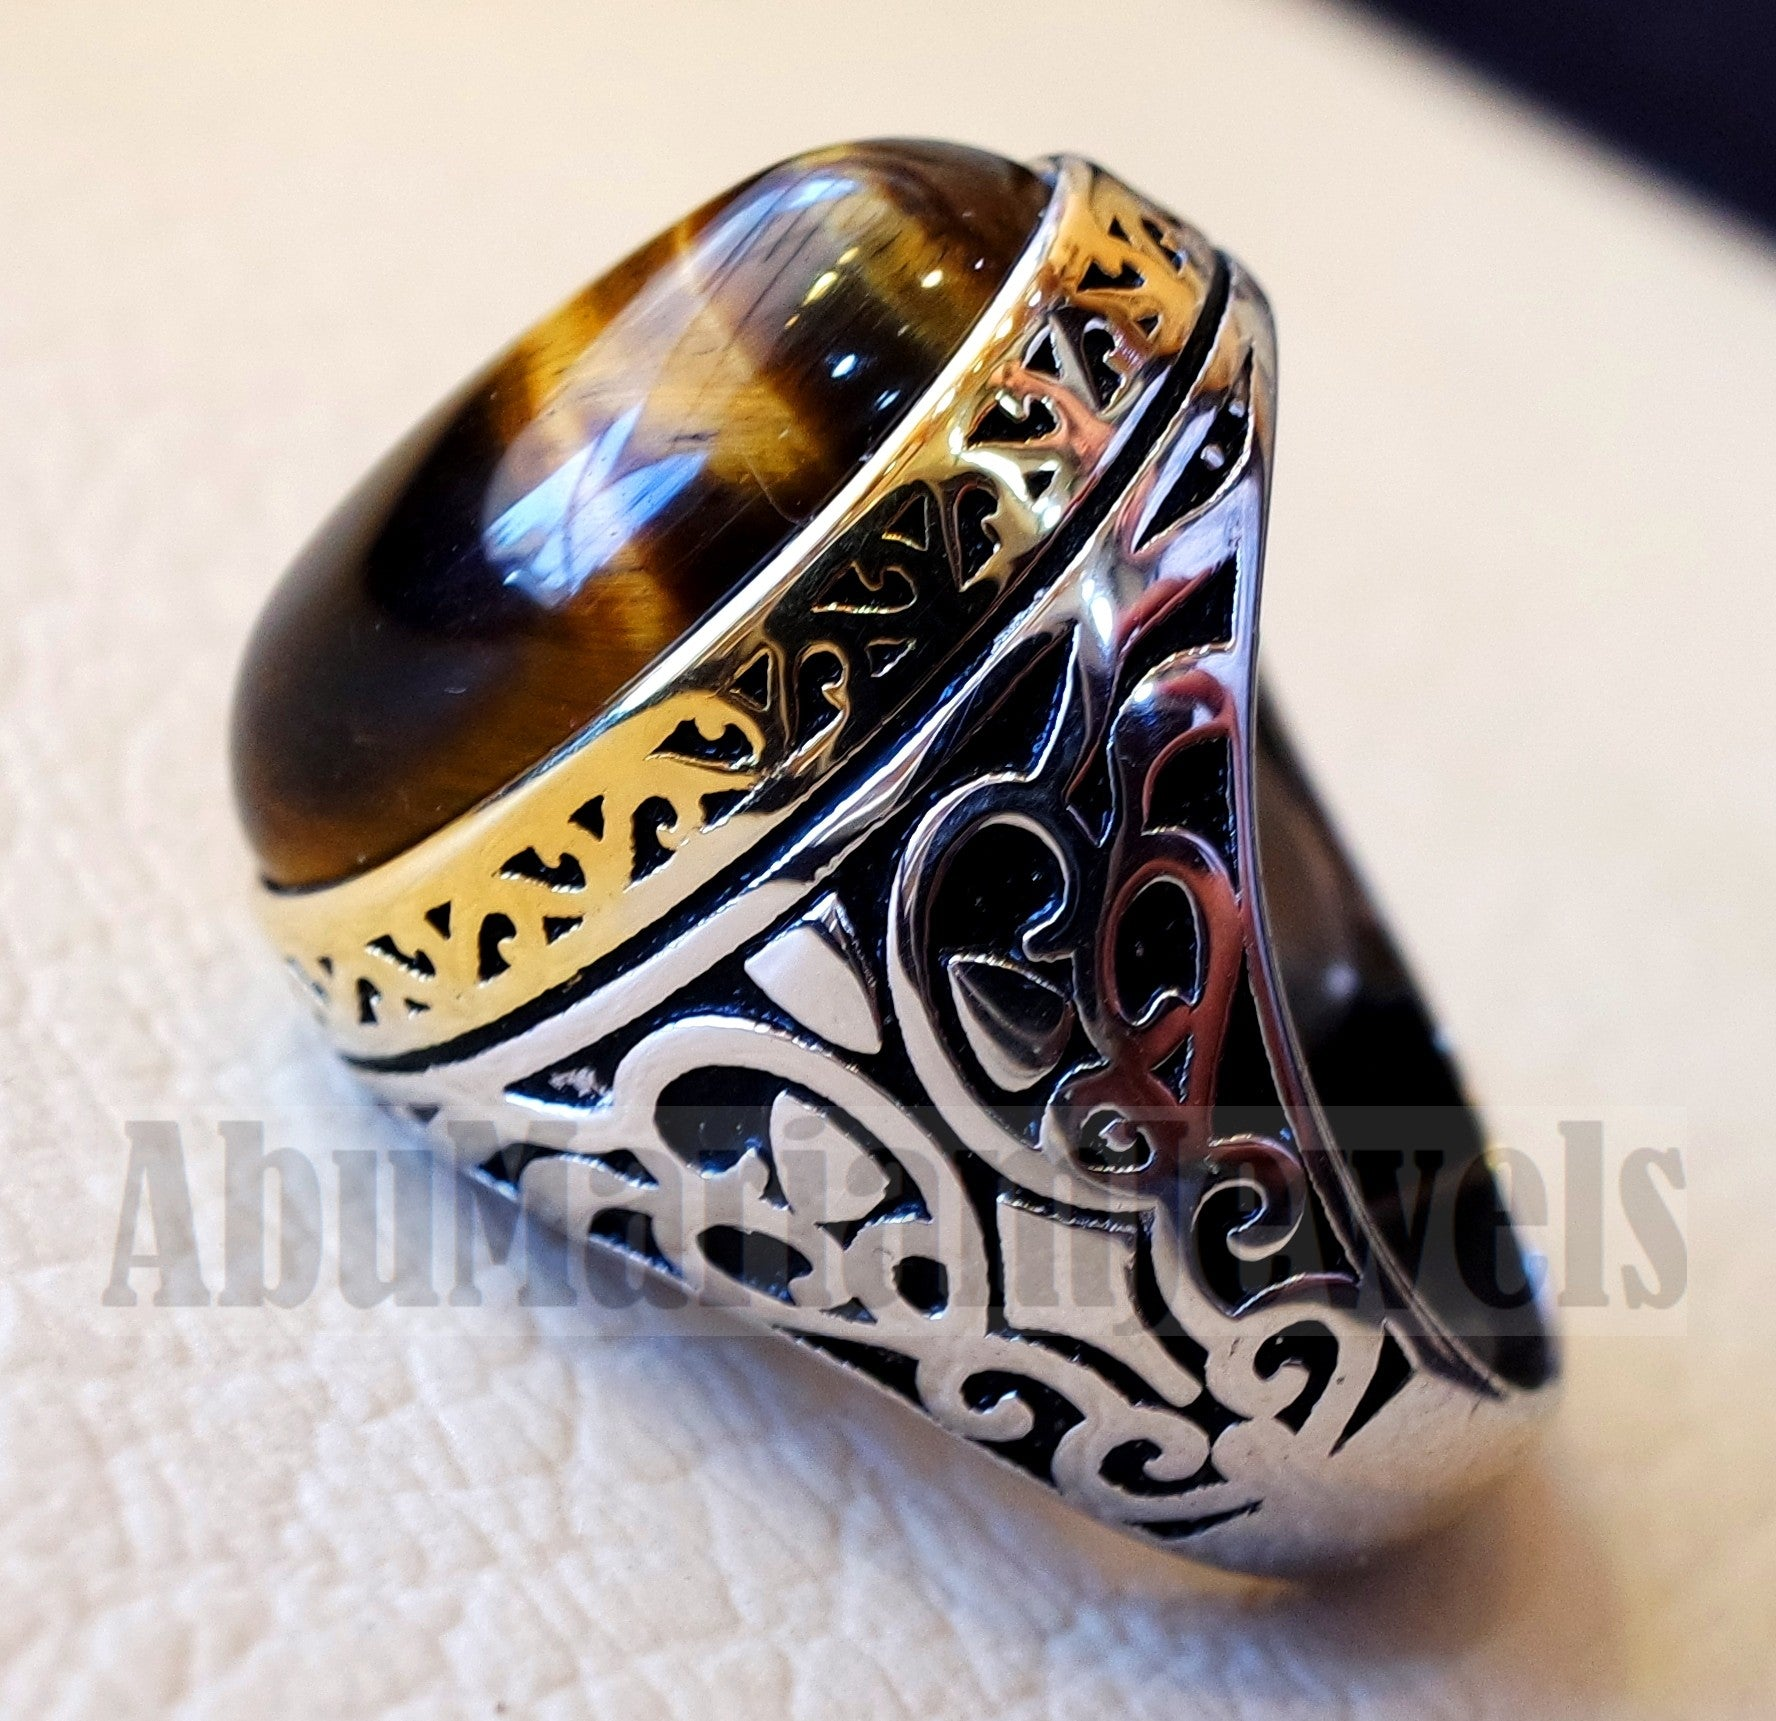 Tiger eye men ring sterling silver 925 cat eye 14 k plated frame natural stone any size ottoman turkish middle eastern arabic jewelry